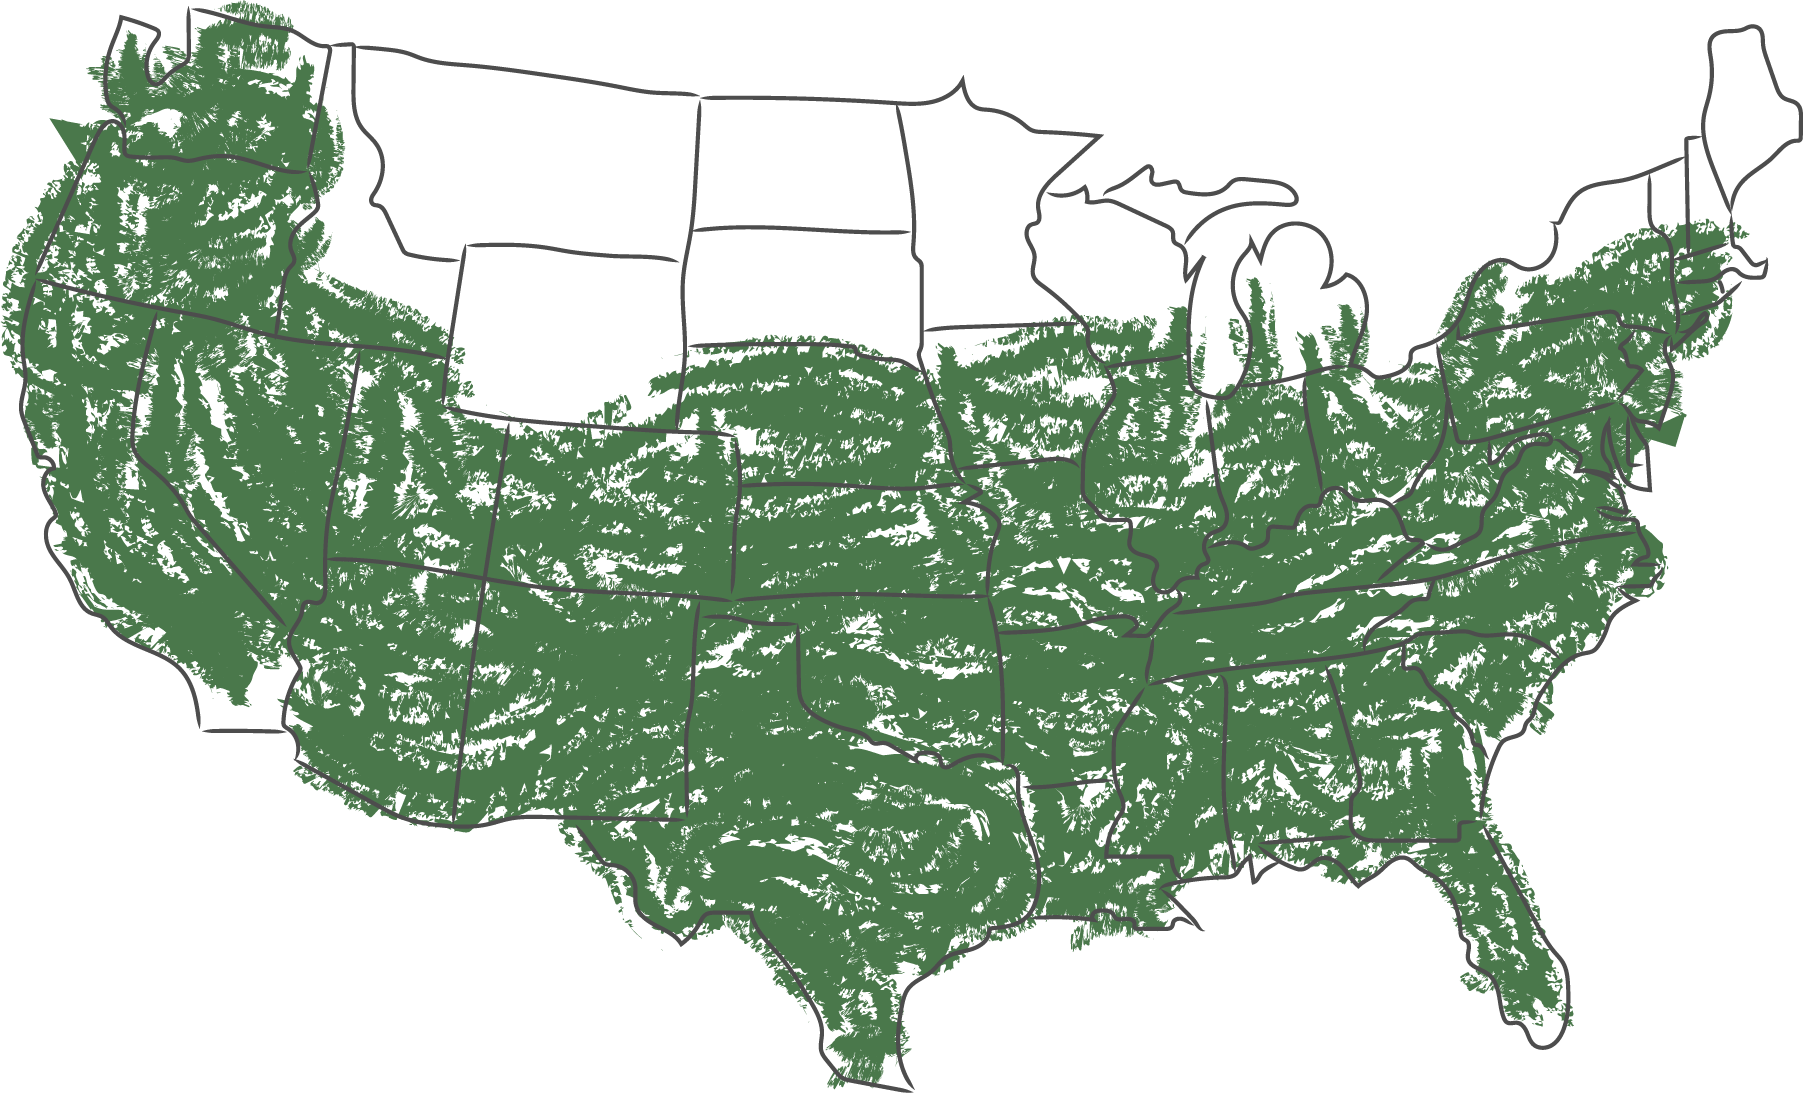 USDA Zones 5-10 highlighted in green on a USA map